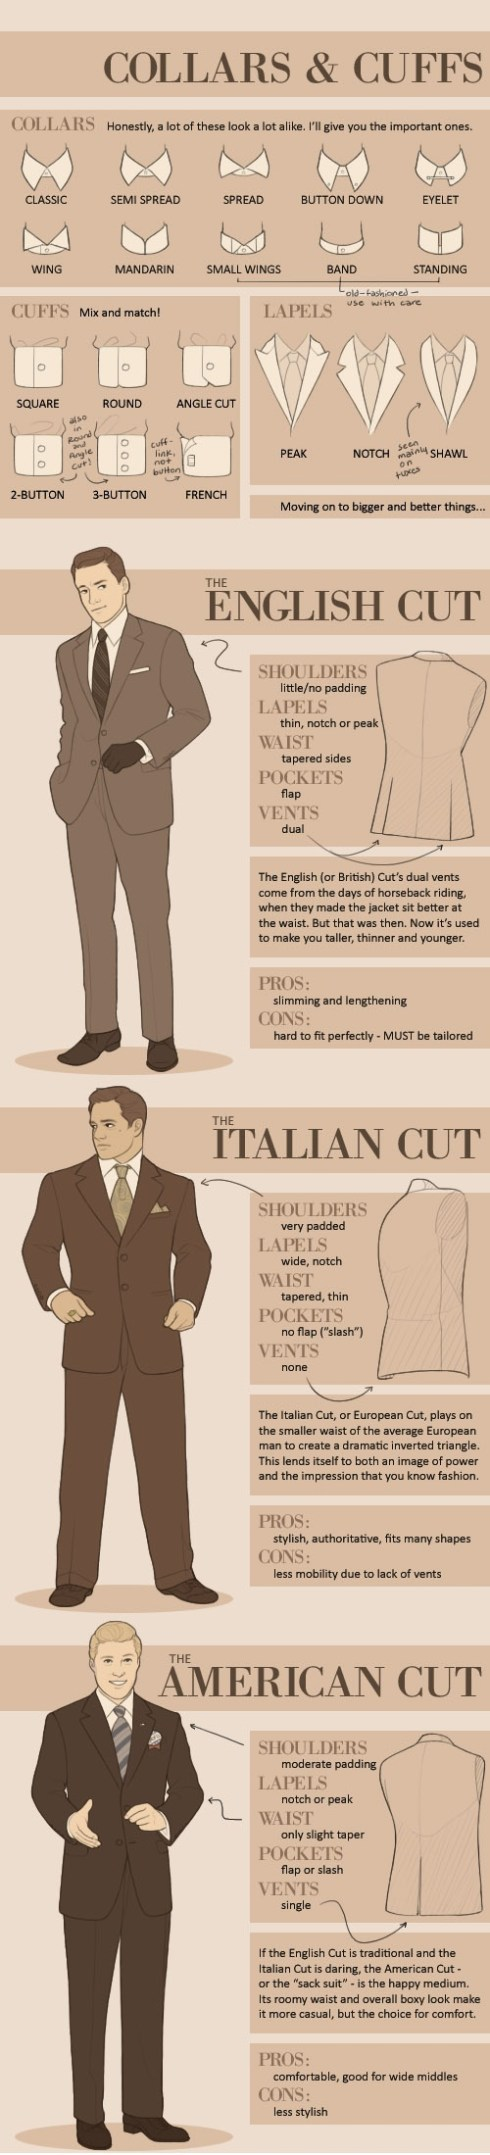 Men's guide to Collars, Cuffs and Suits